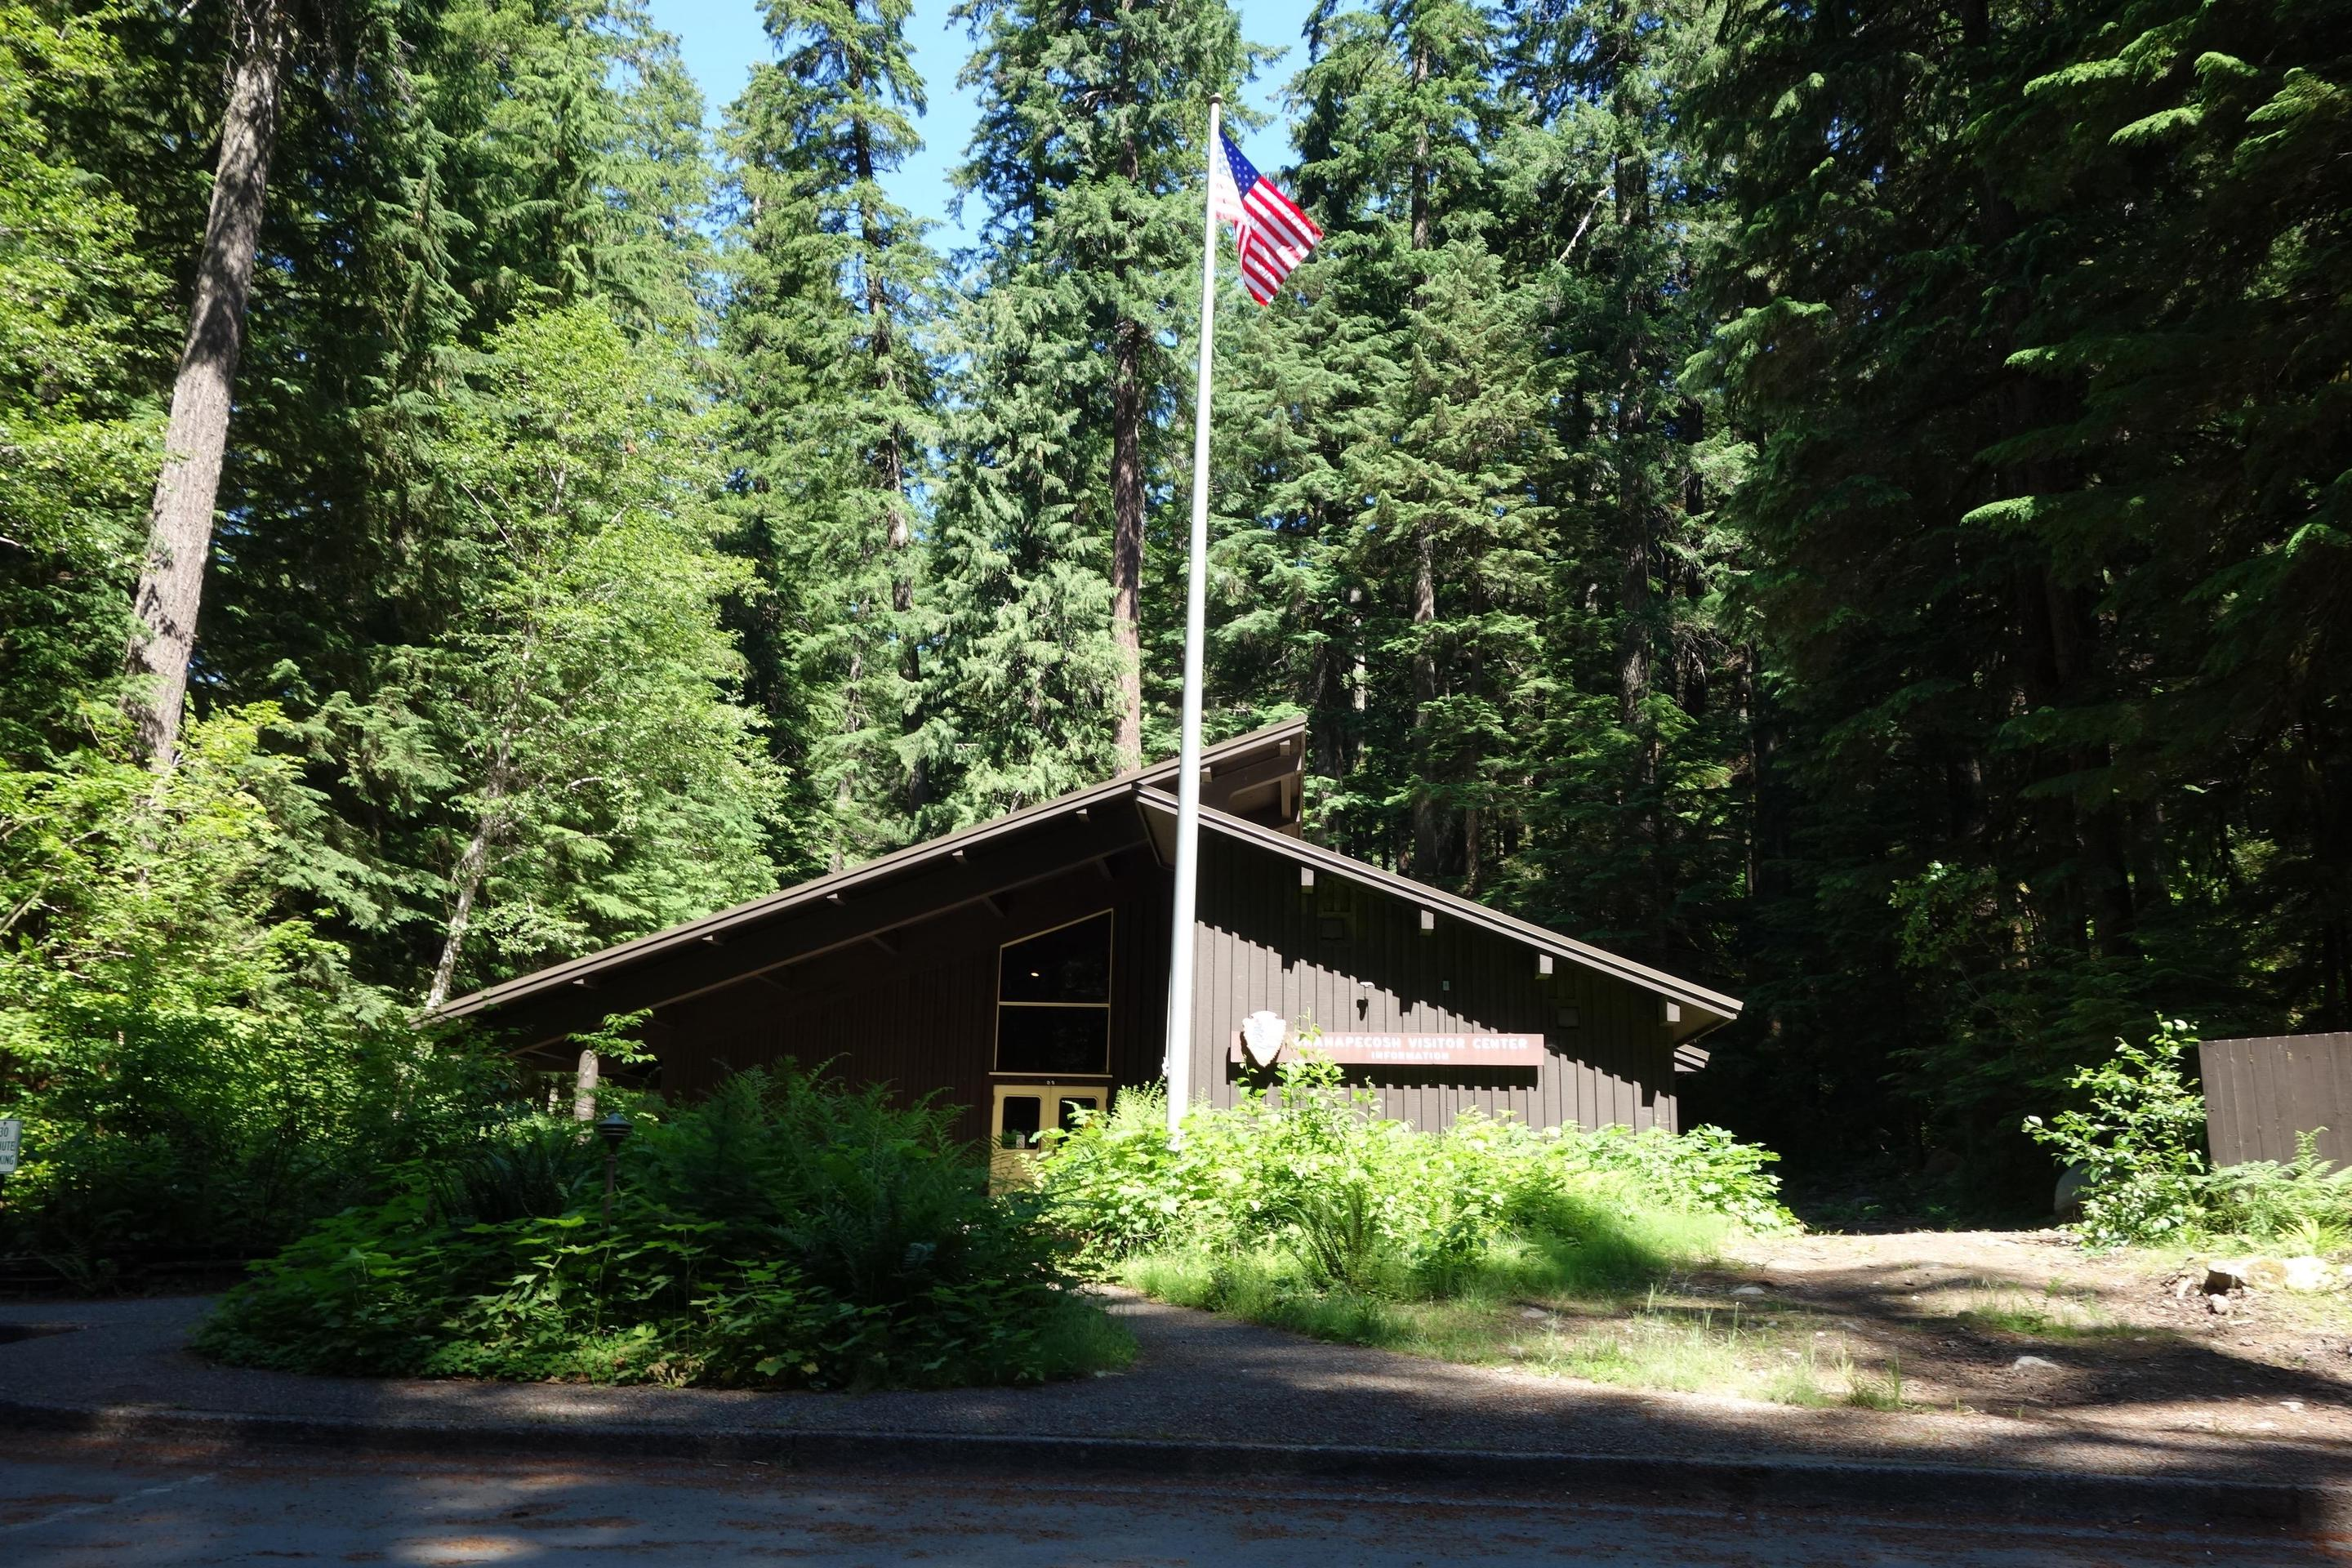 Ohanapecosh Visitor CenterThe Ohanapecosh Visitor Center has thousands of visitors per year who flock to the area to see the old-growth trees and learn more about the park.